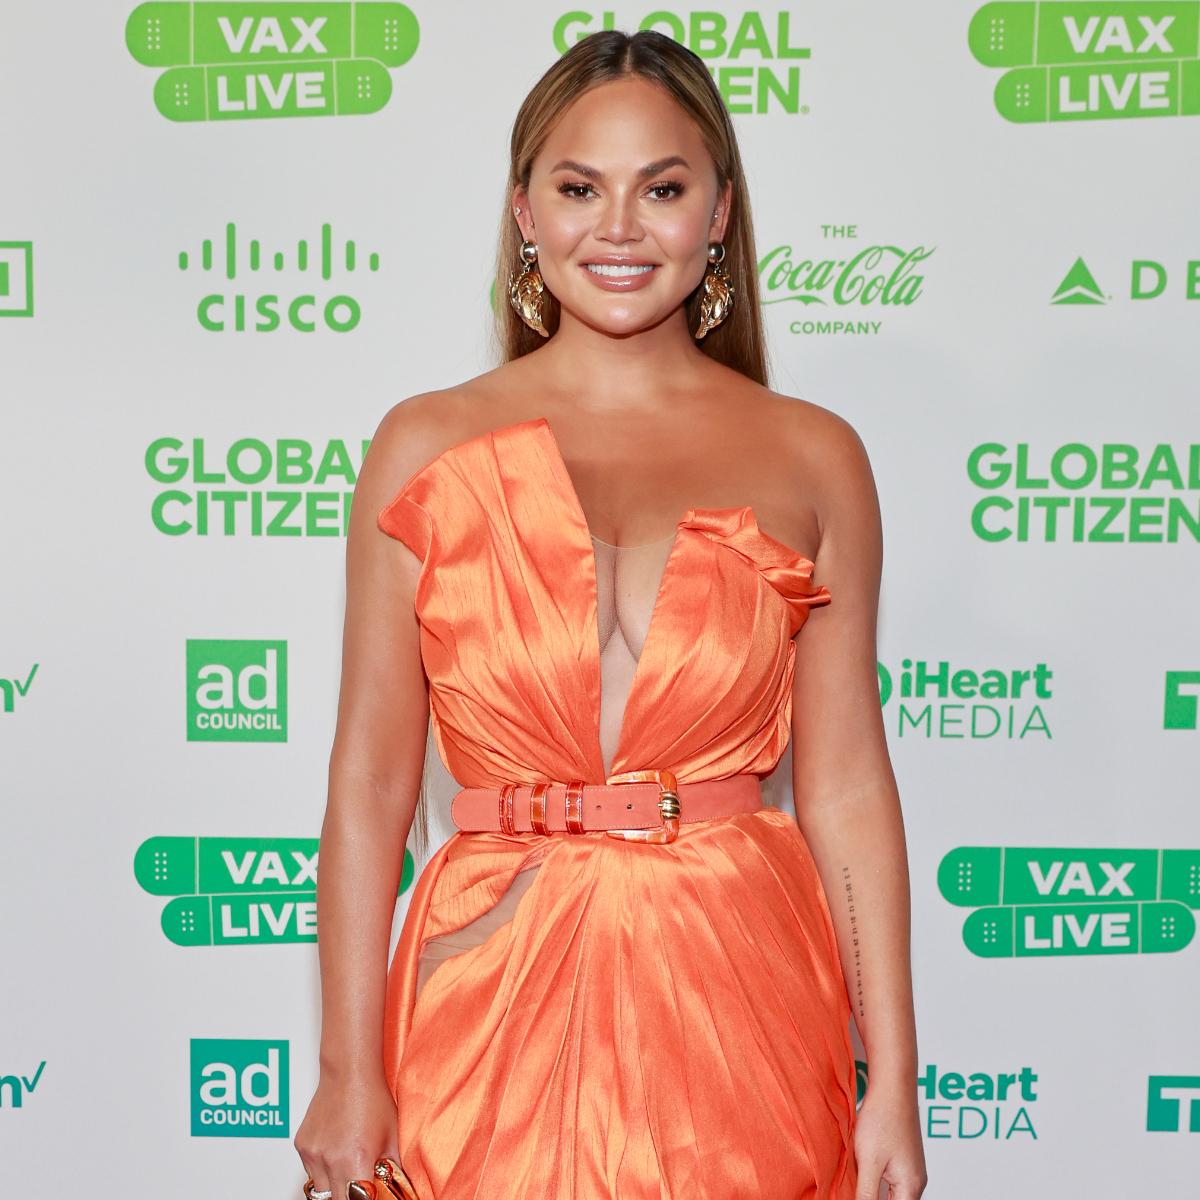 Chrissy Teigen breaks silence on Michael Costello allegations; Warns legal action over 'fake DMs'